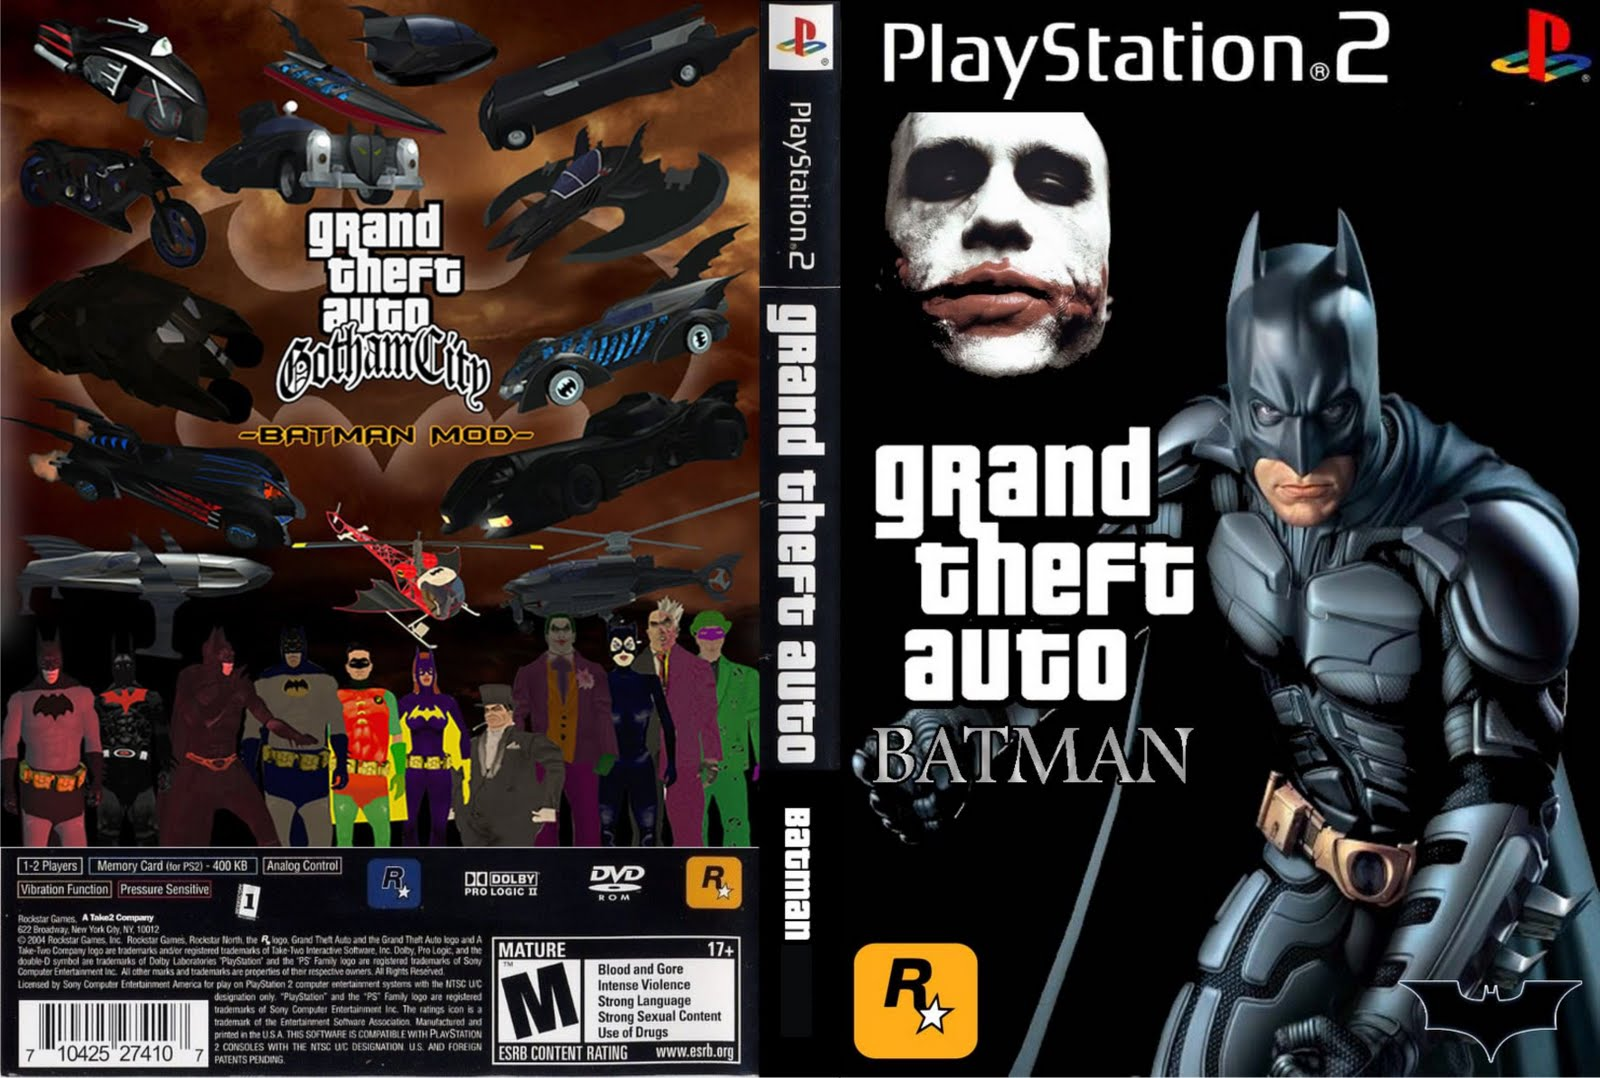 Gta san andreas batman ps2